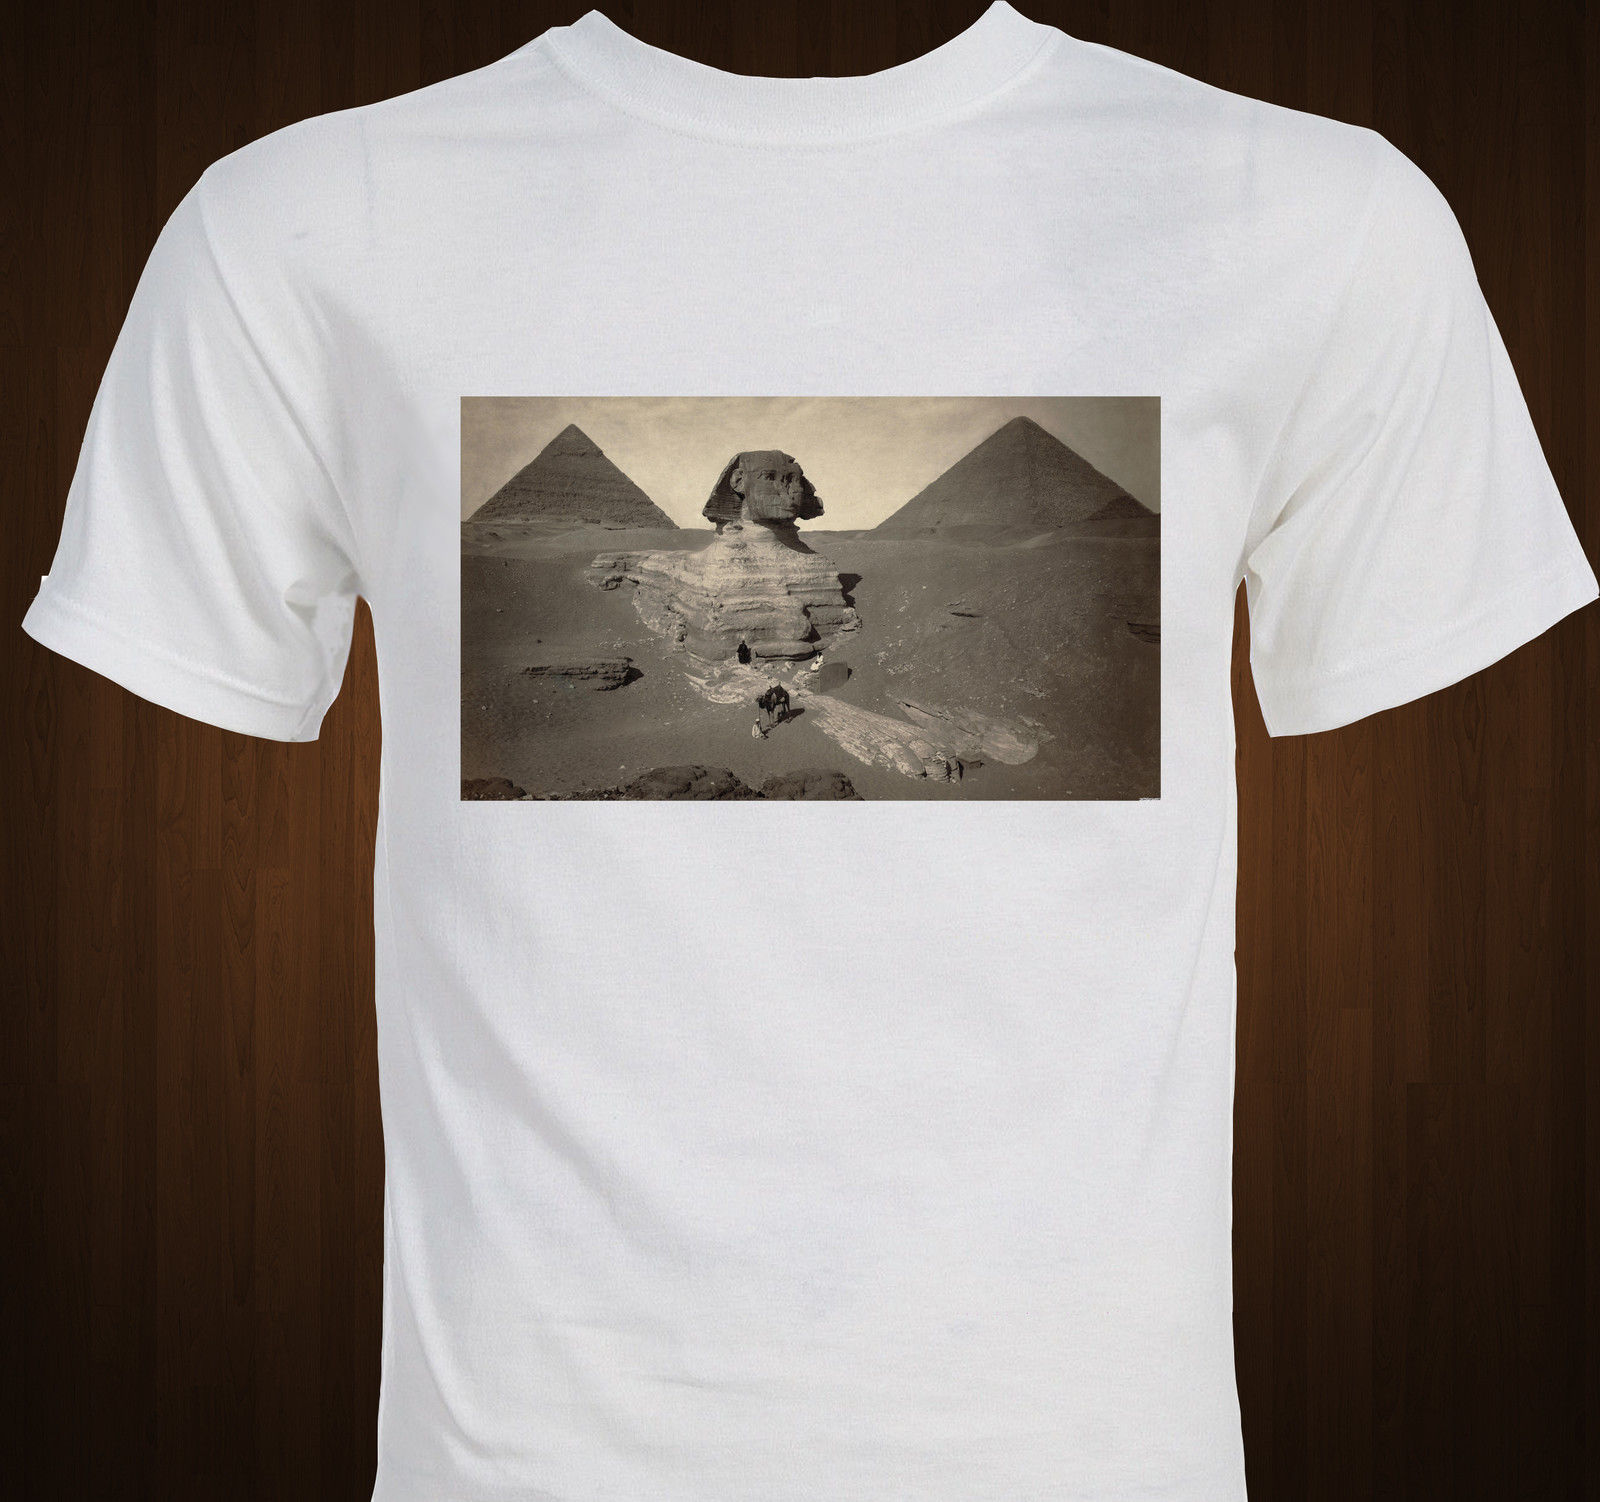 Ancient Egypt Pyramids Giza Sphinx new age spiritual 2012 aliens T-shirt Short Sleeve Cotton T Shirts Man Clothing